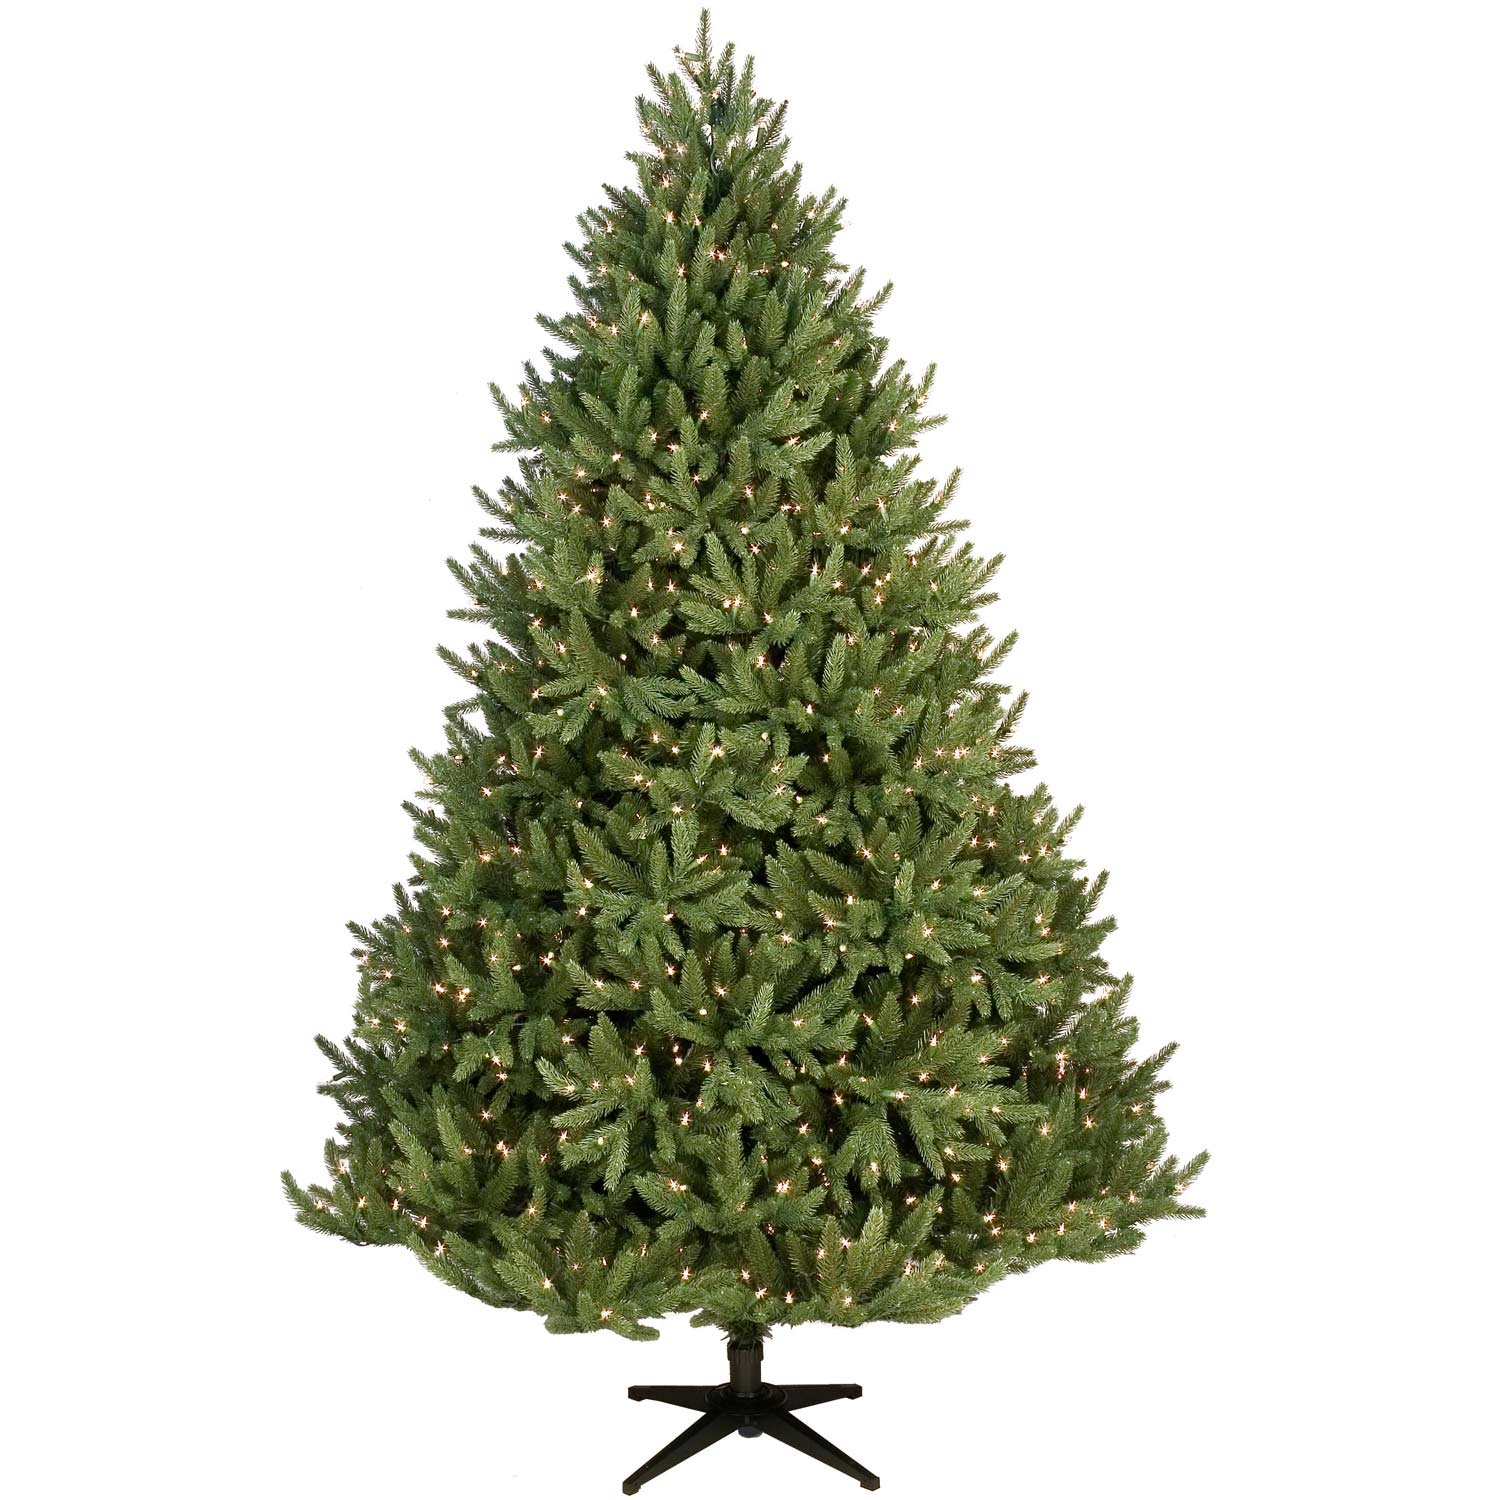 Most Realistic Artificial Christmas Tree Reviews